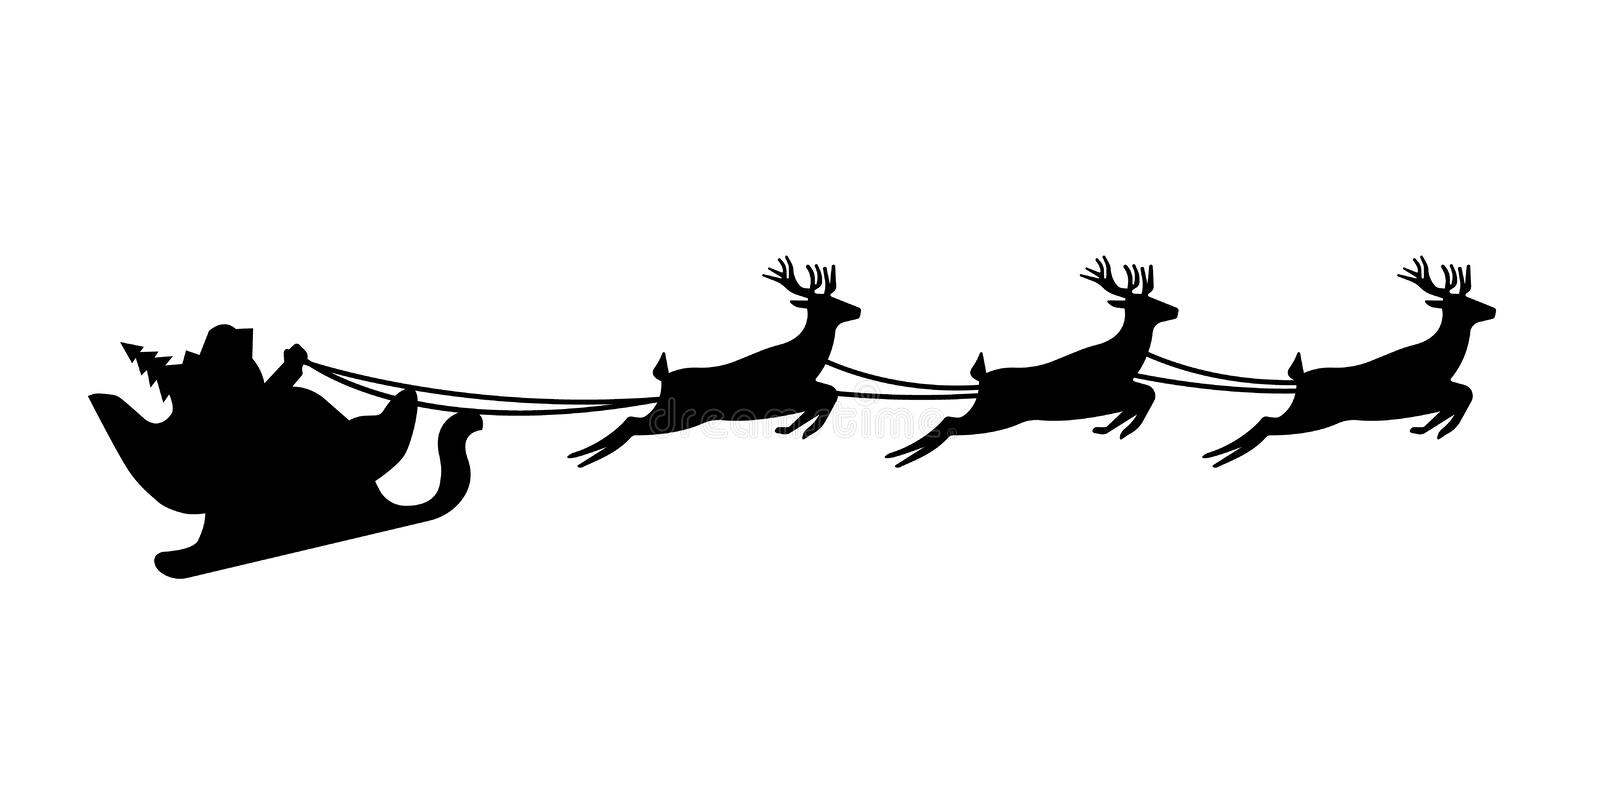 Santa Claus silhouette riding a sleigh with deers. Vector illustration vector illustration